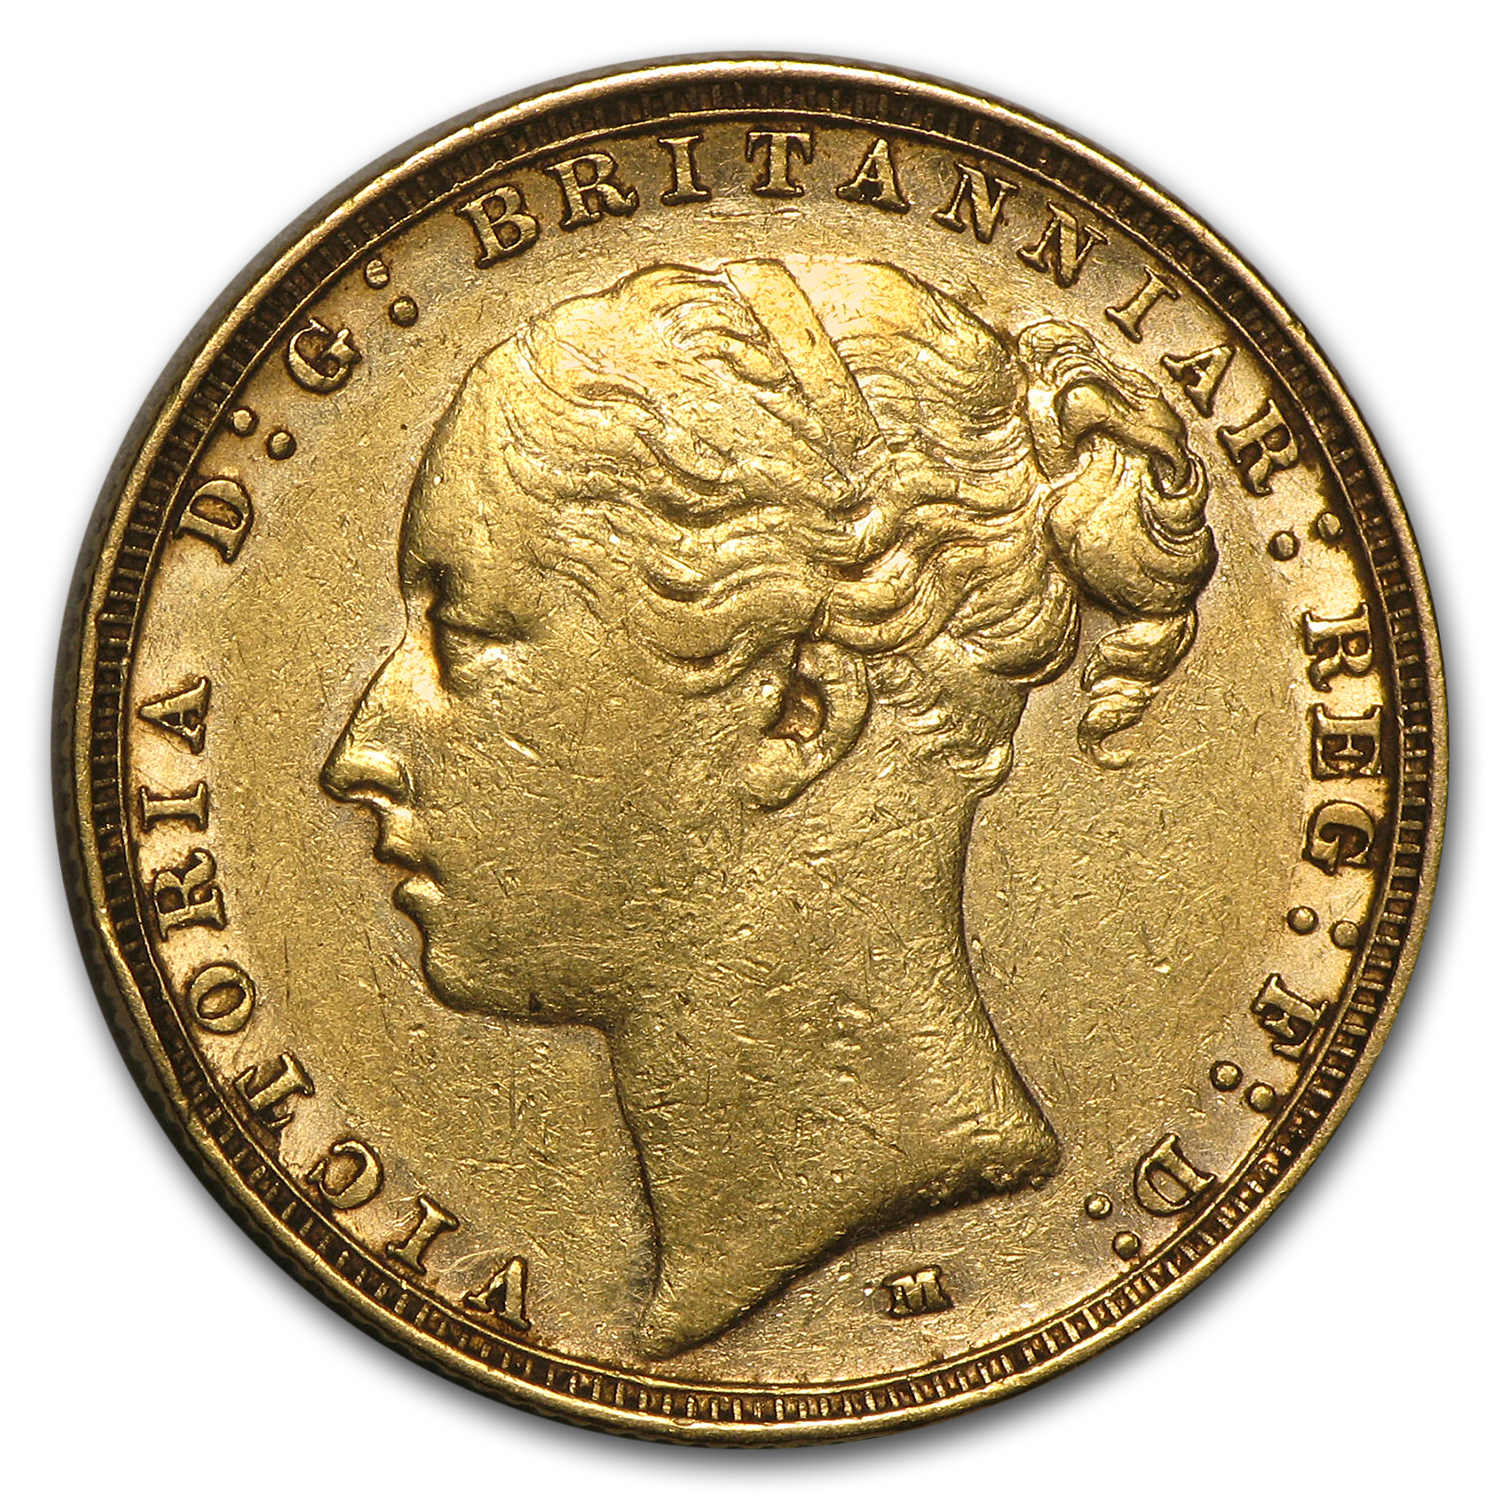 1872-1887-M Australia Gold Sovereign Young Victoria Avg Circ